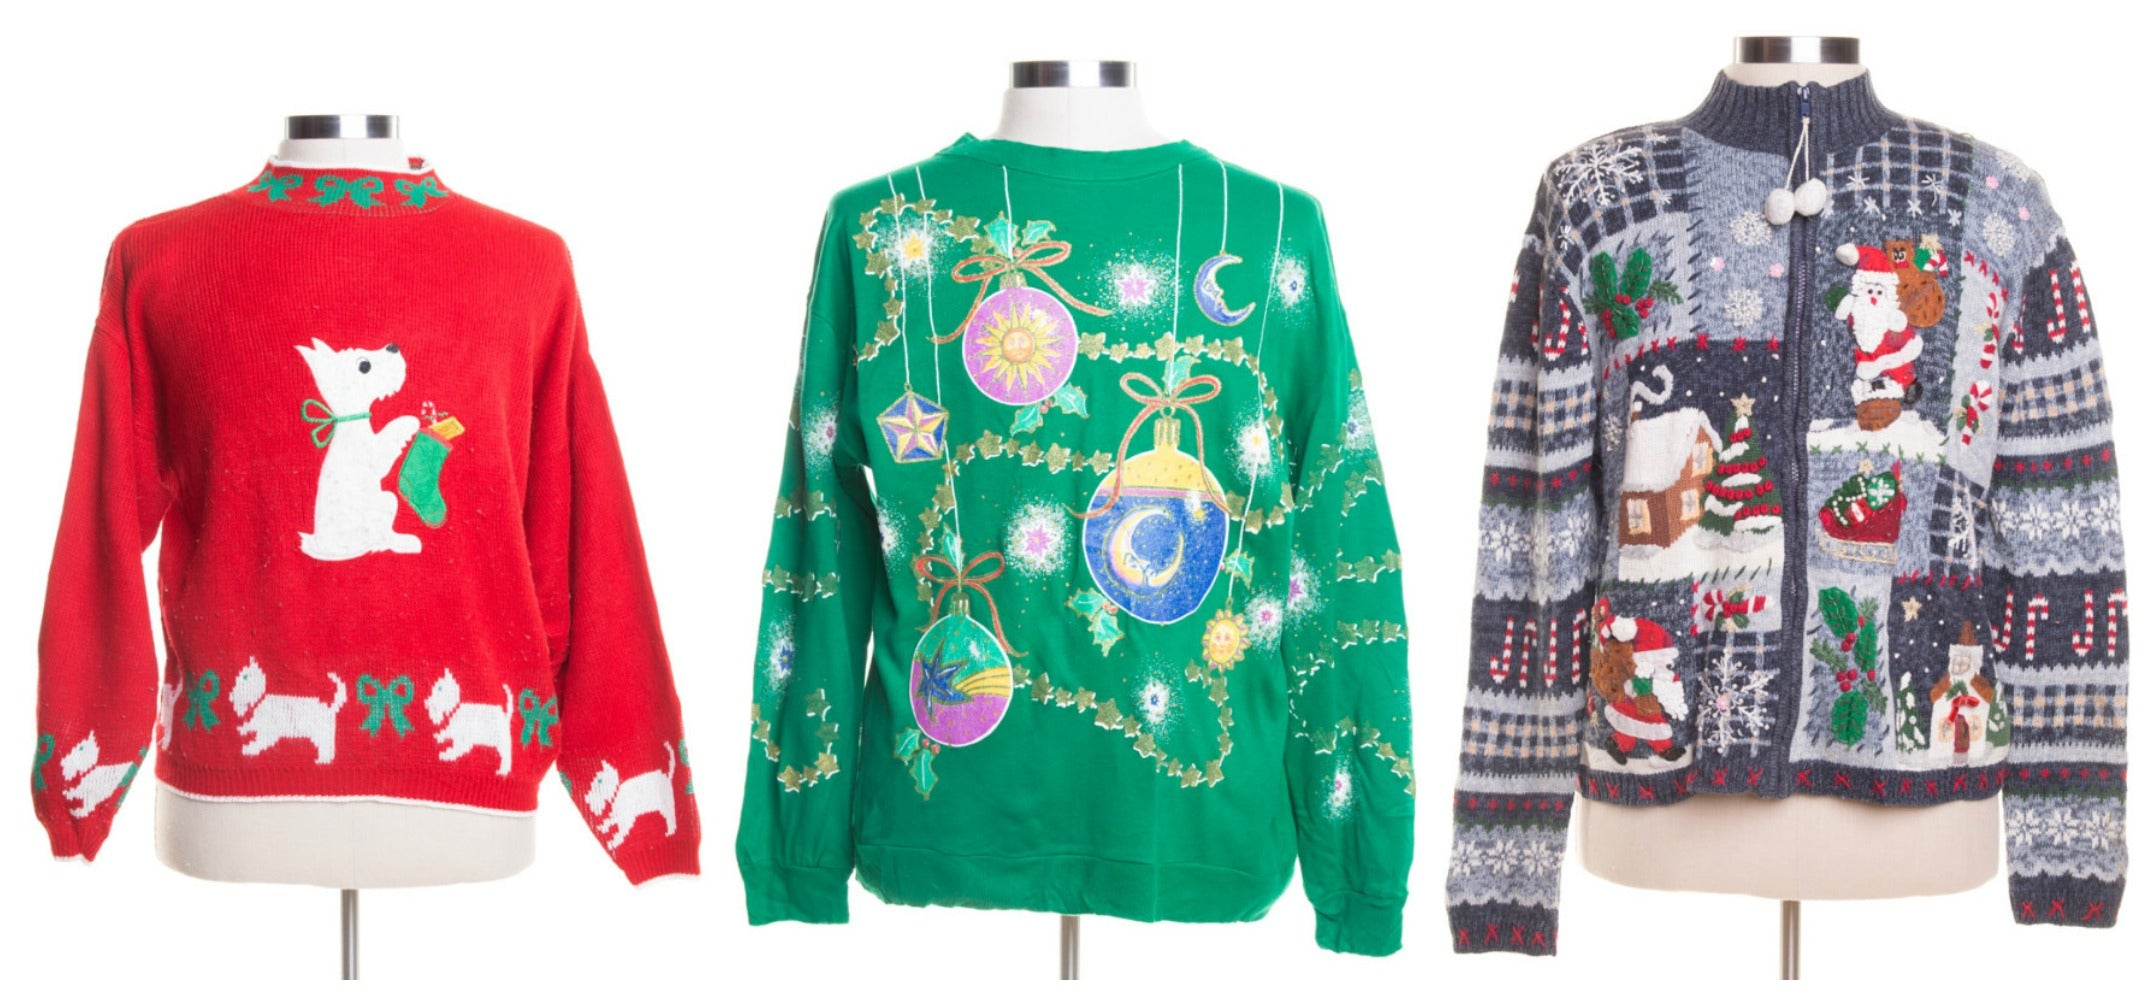 Sweater Store Ugly Christmas Sweaters